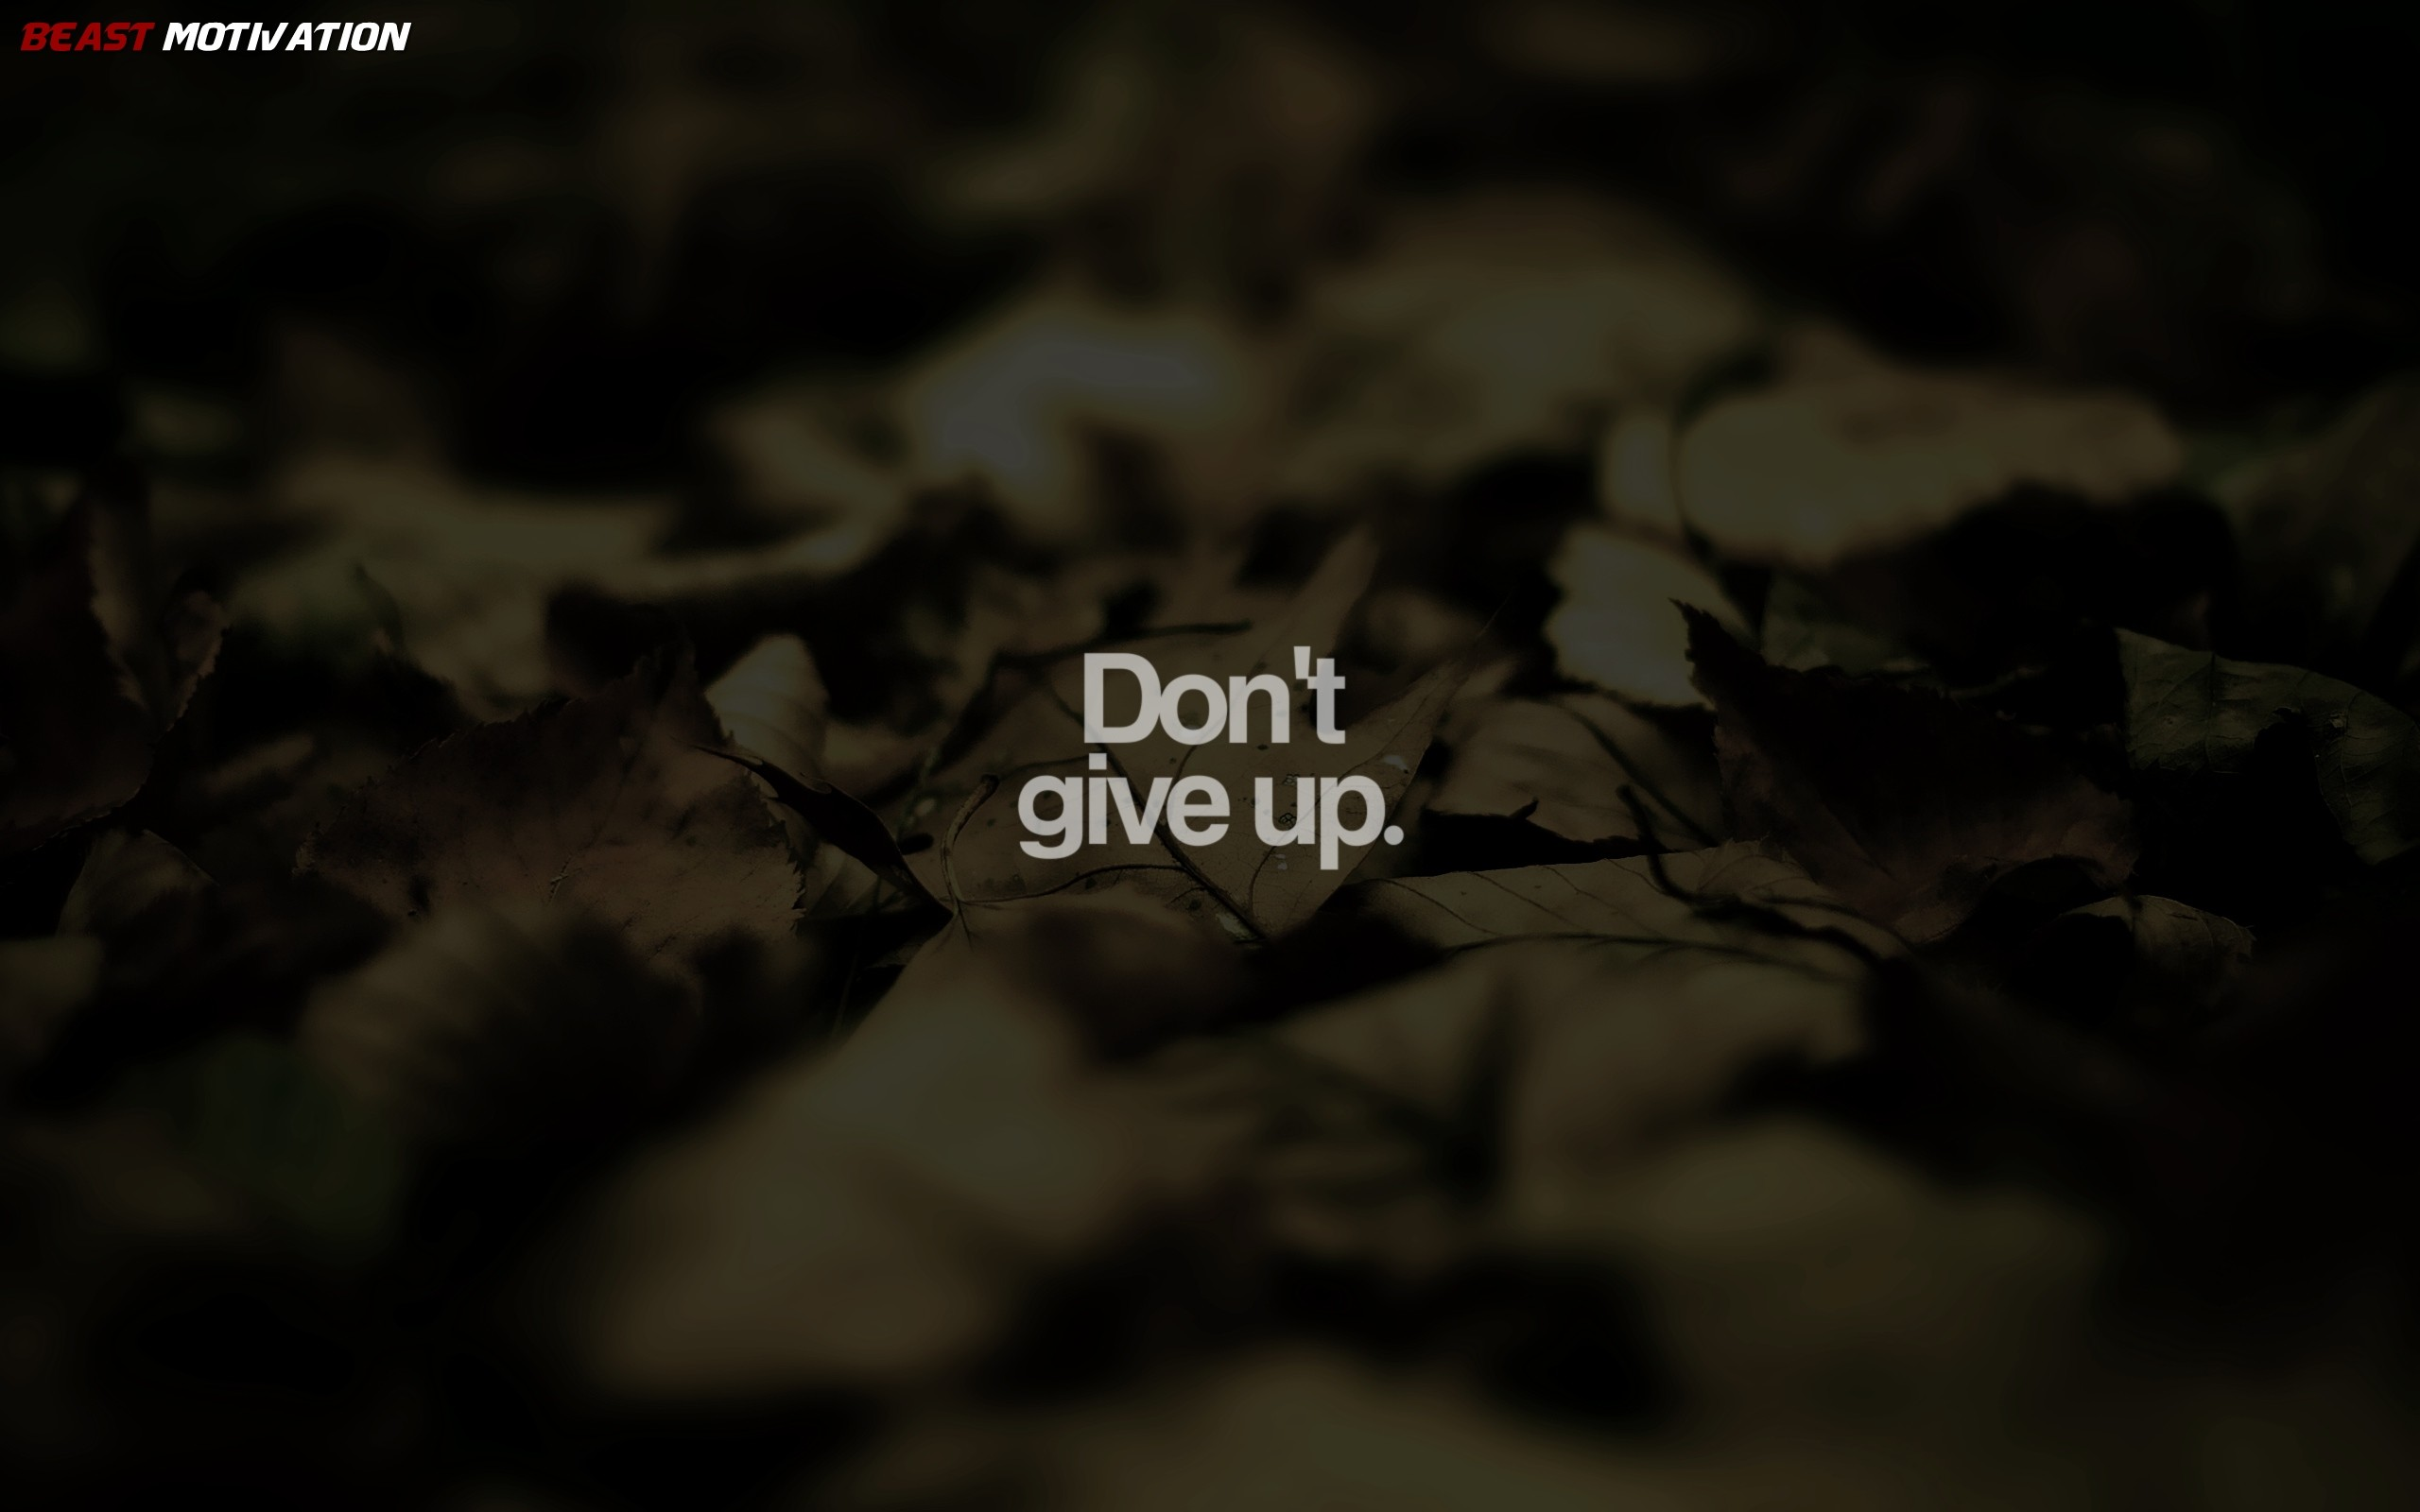 Iphone 6 Wallpaper Life Quotes Study Motivation Wallpaper 70 Images